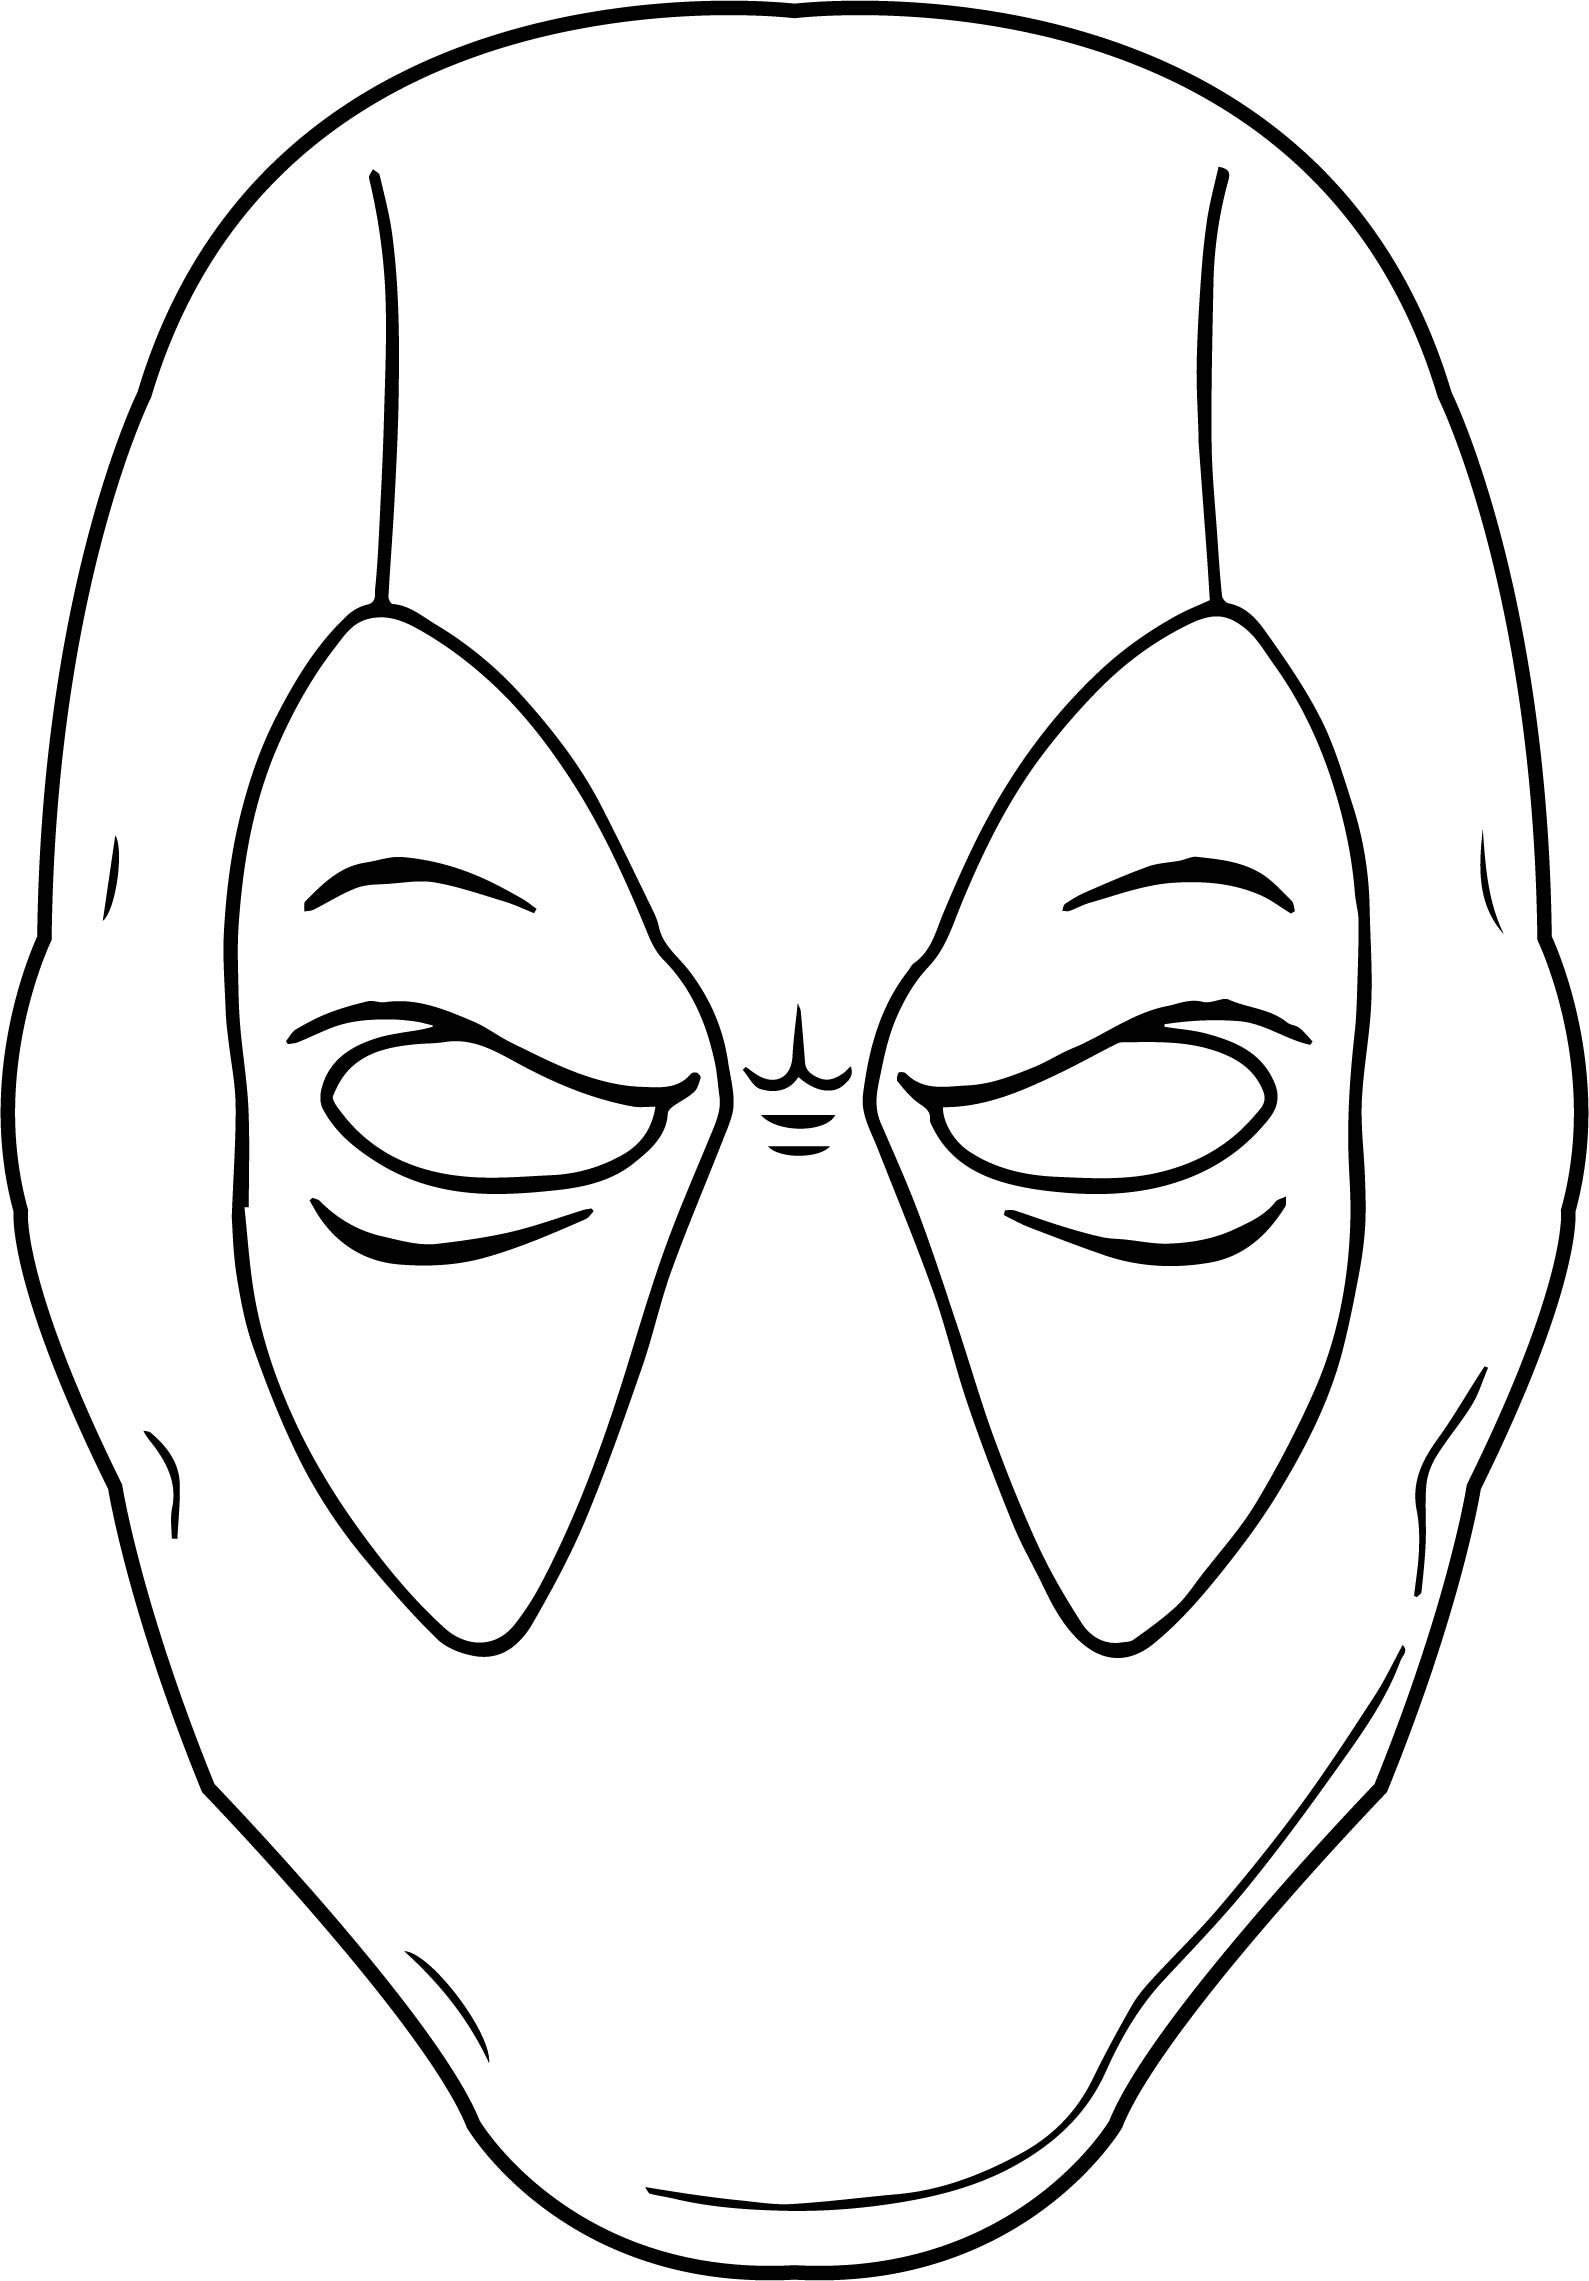 Deadpool Coloring Pages: Black White Outline Deadpool Coloring Page